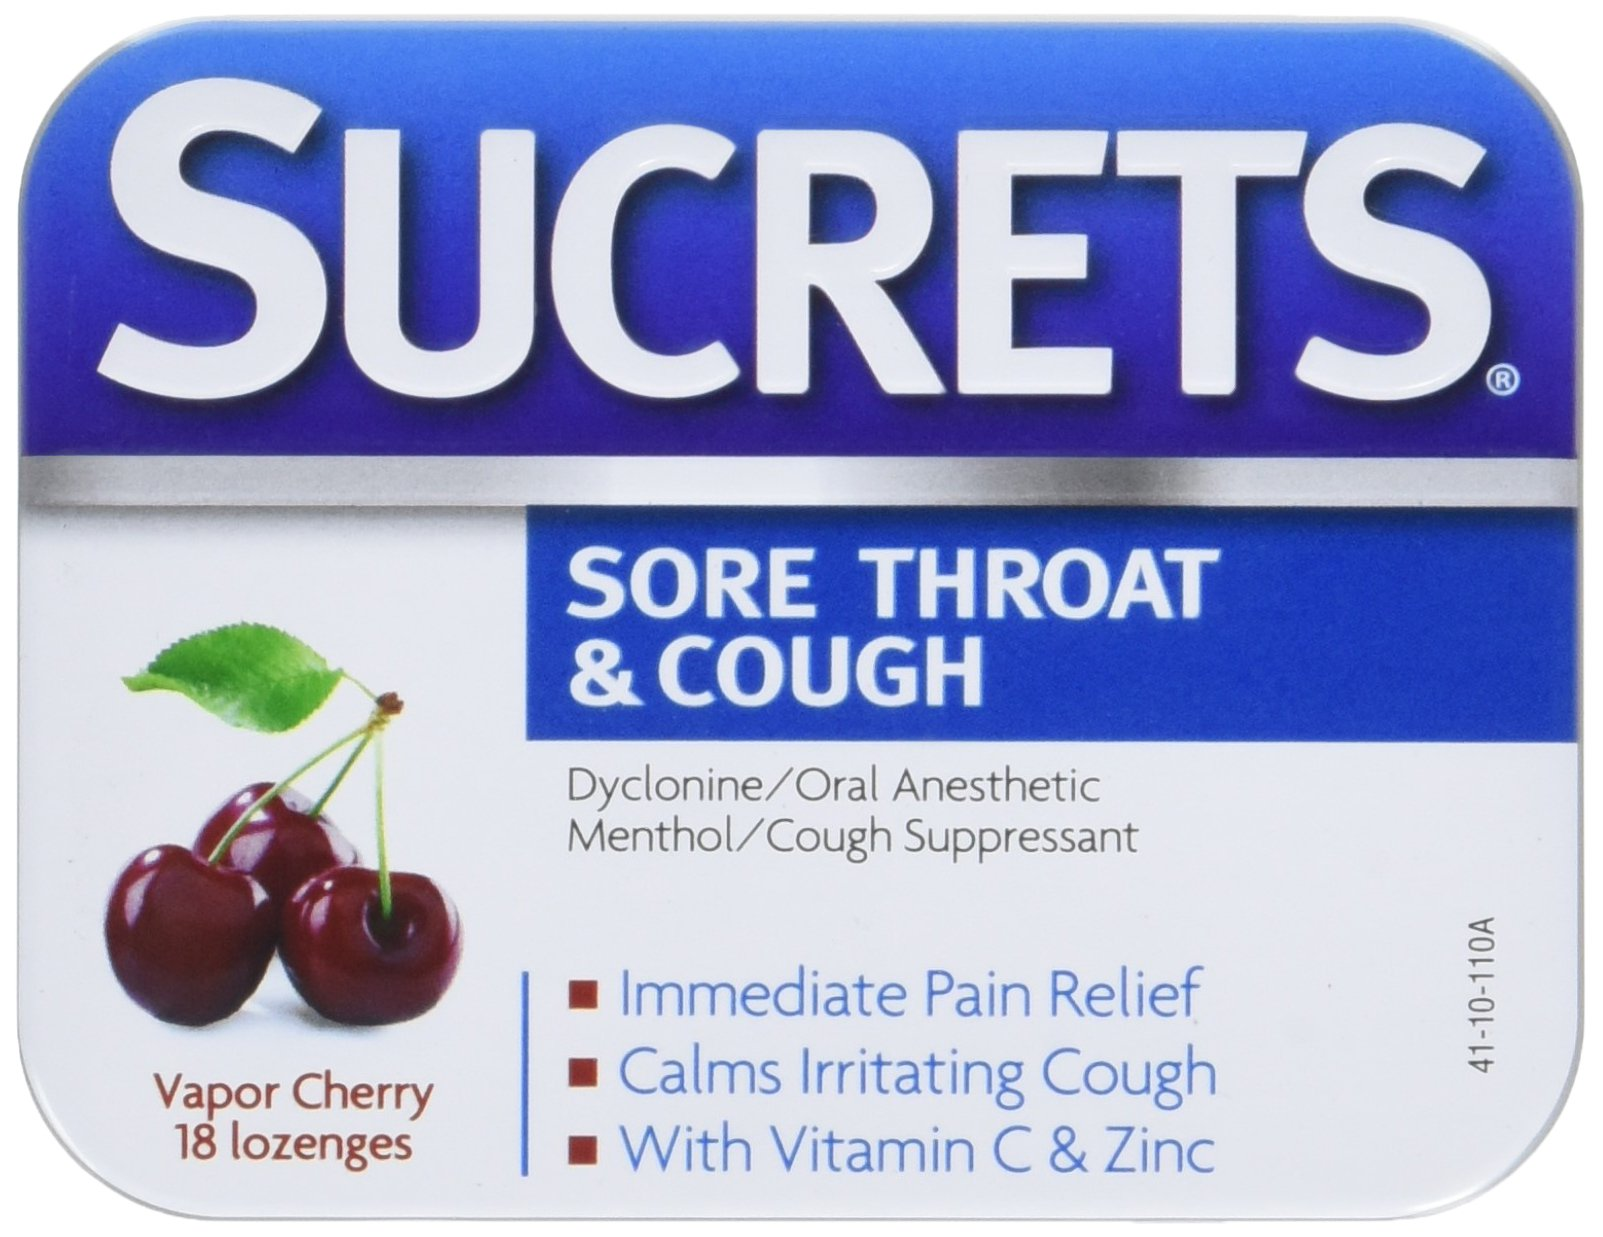 Sucrets Sore Throat Lozenges, Vapor Cherry, 18 Count. Sore Throat & Cough Relief, Dyclonine hydrochloride 3.0 mg and Menthol 6.0 mg for immediate pain relief, Iconic Sucrets Tin. (Pack of 6) by Sucrets